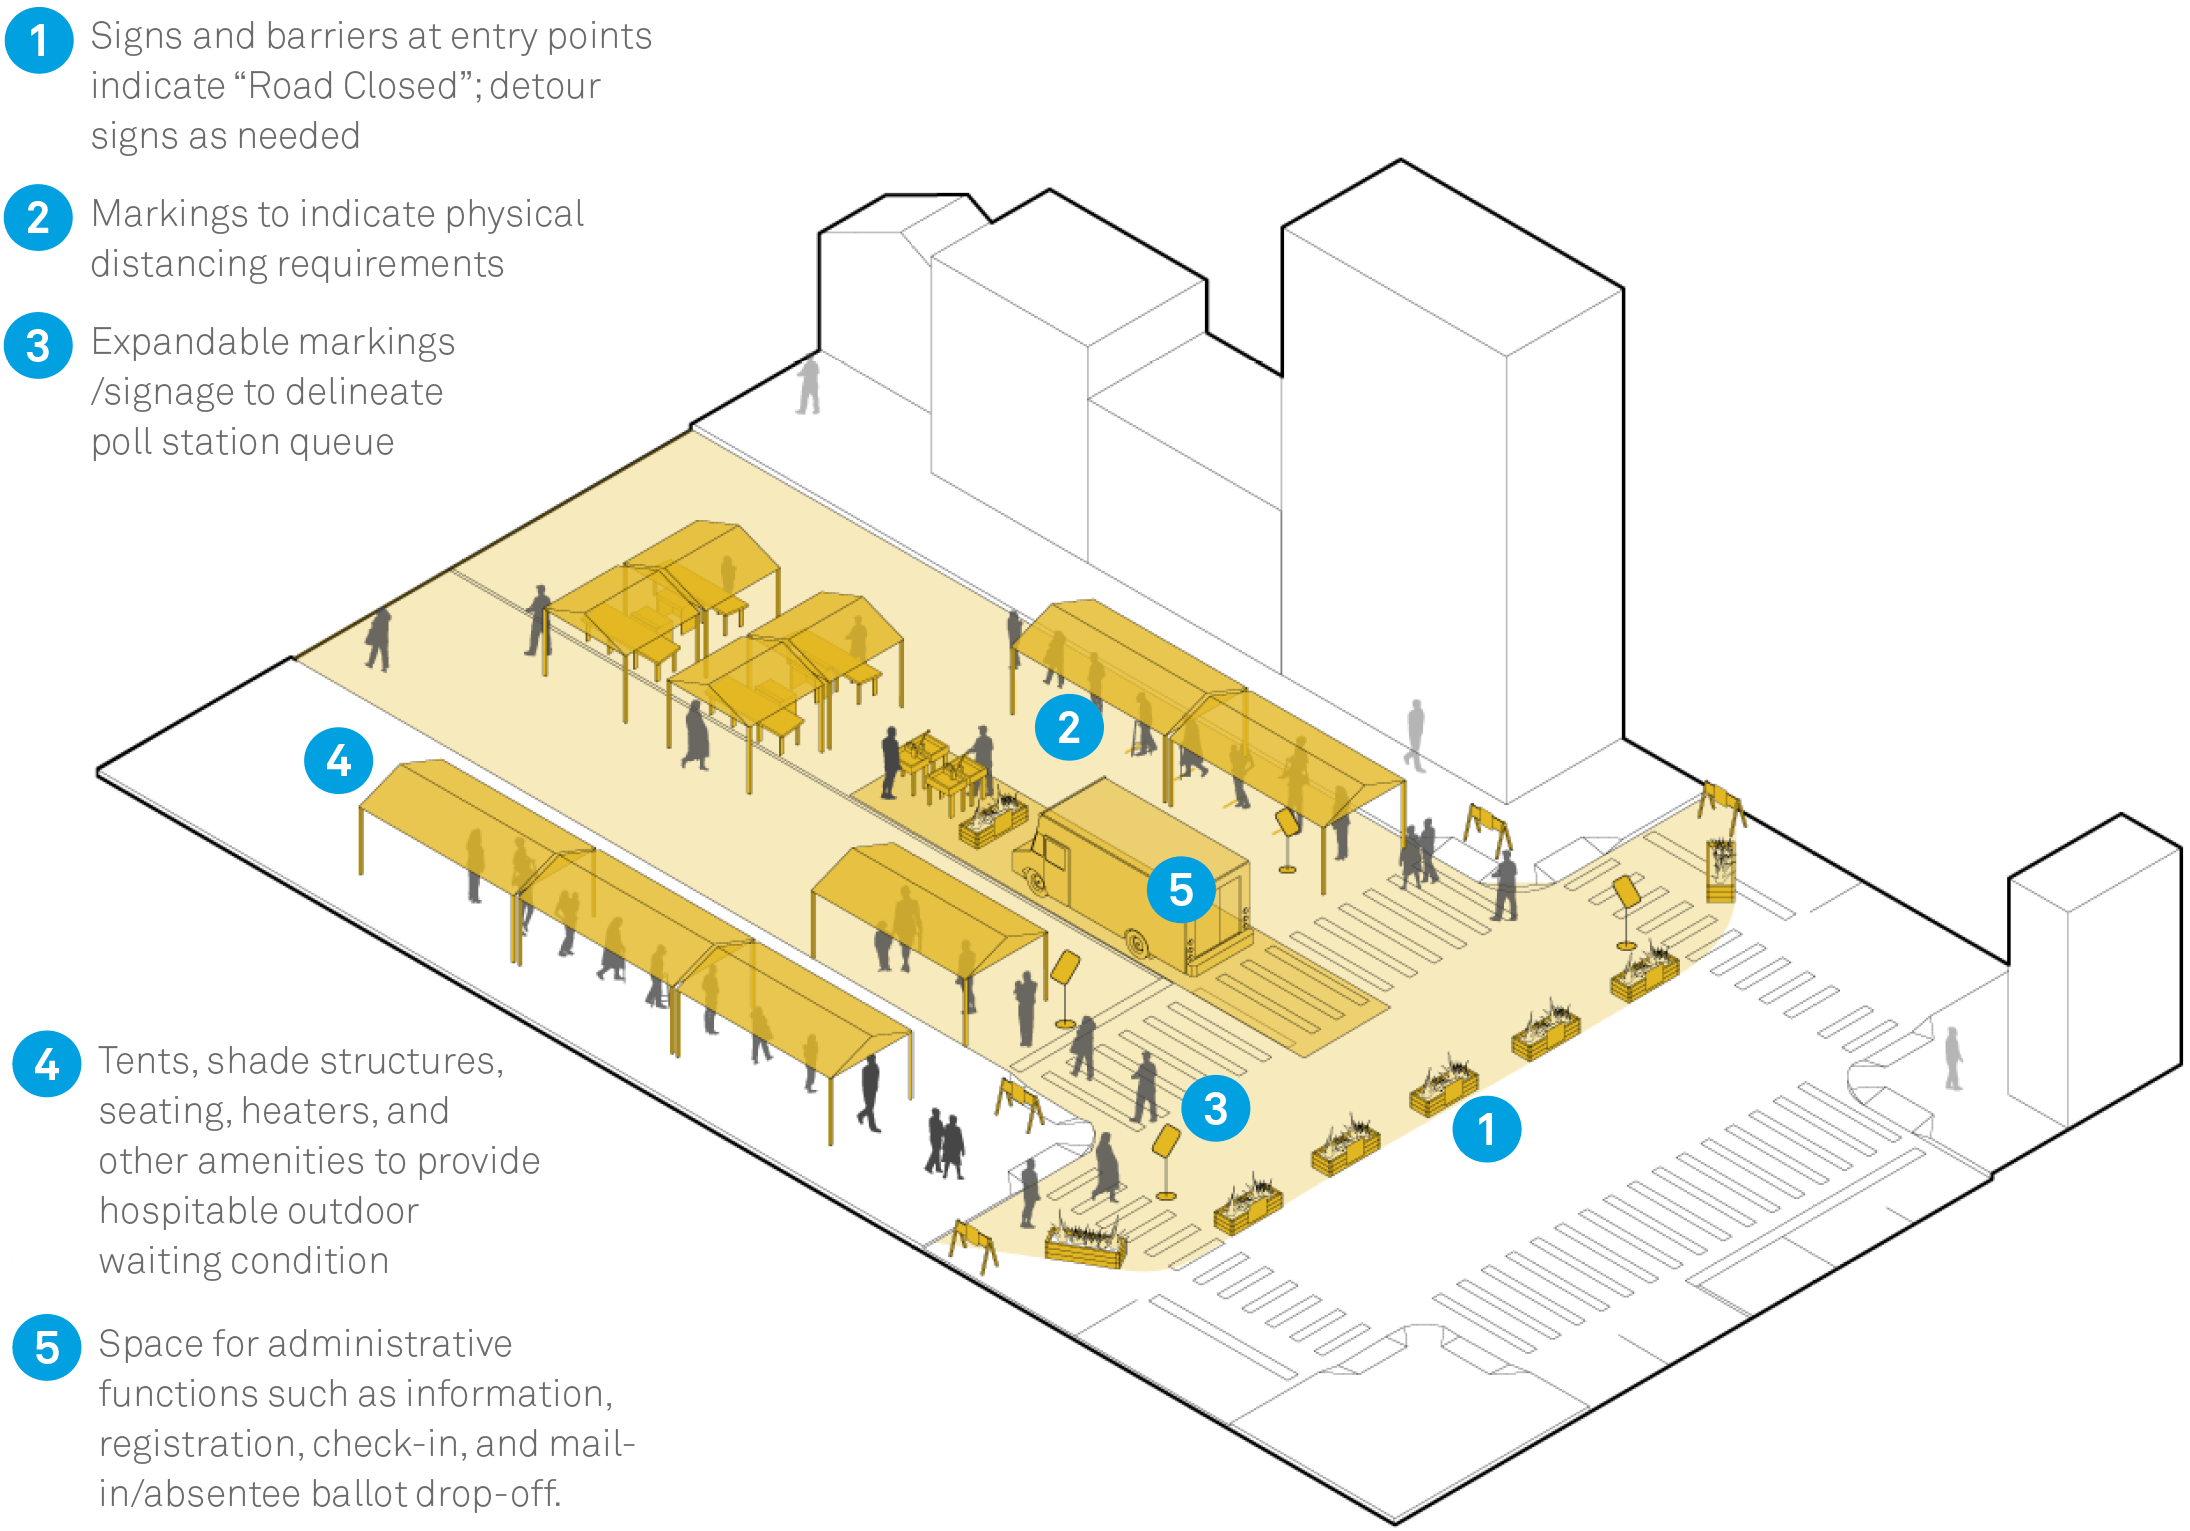 Streets for Voting - Diagram